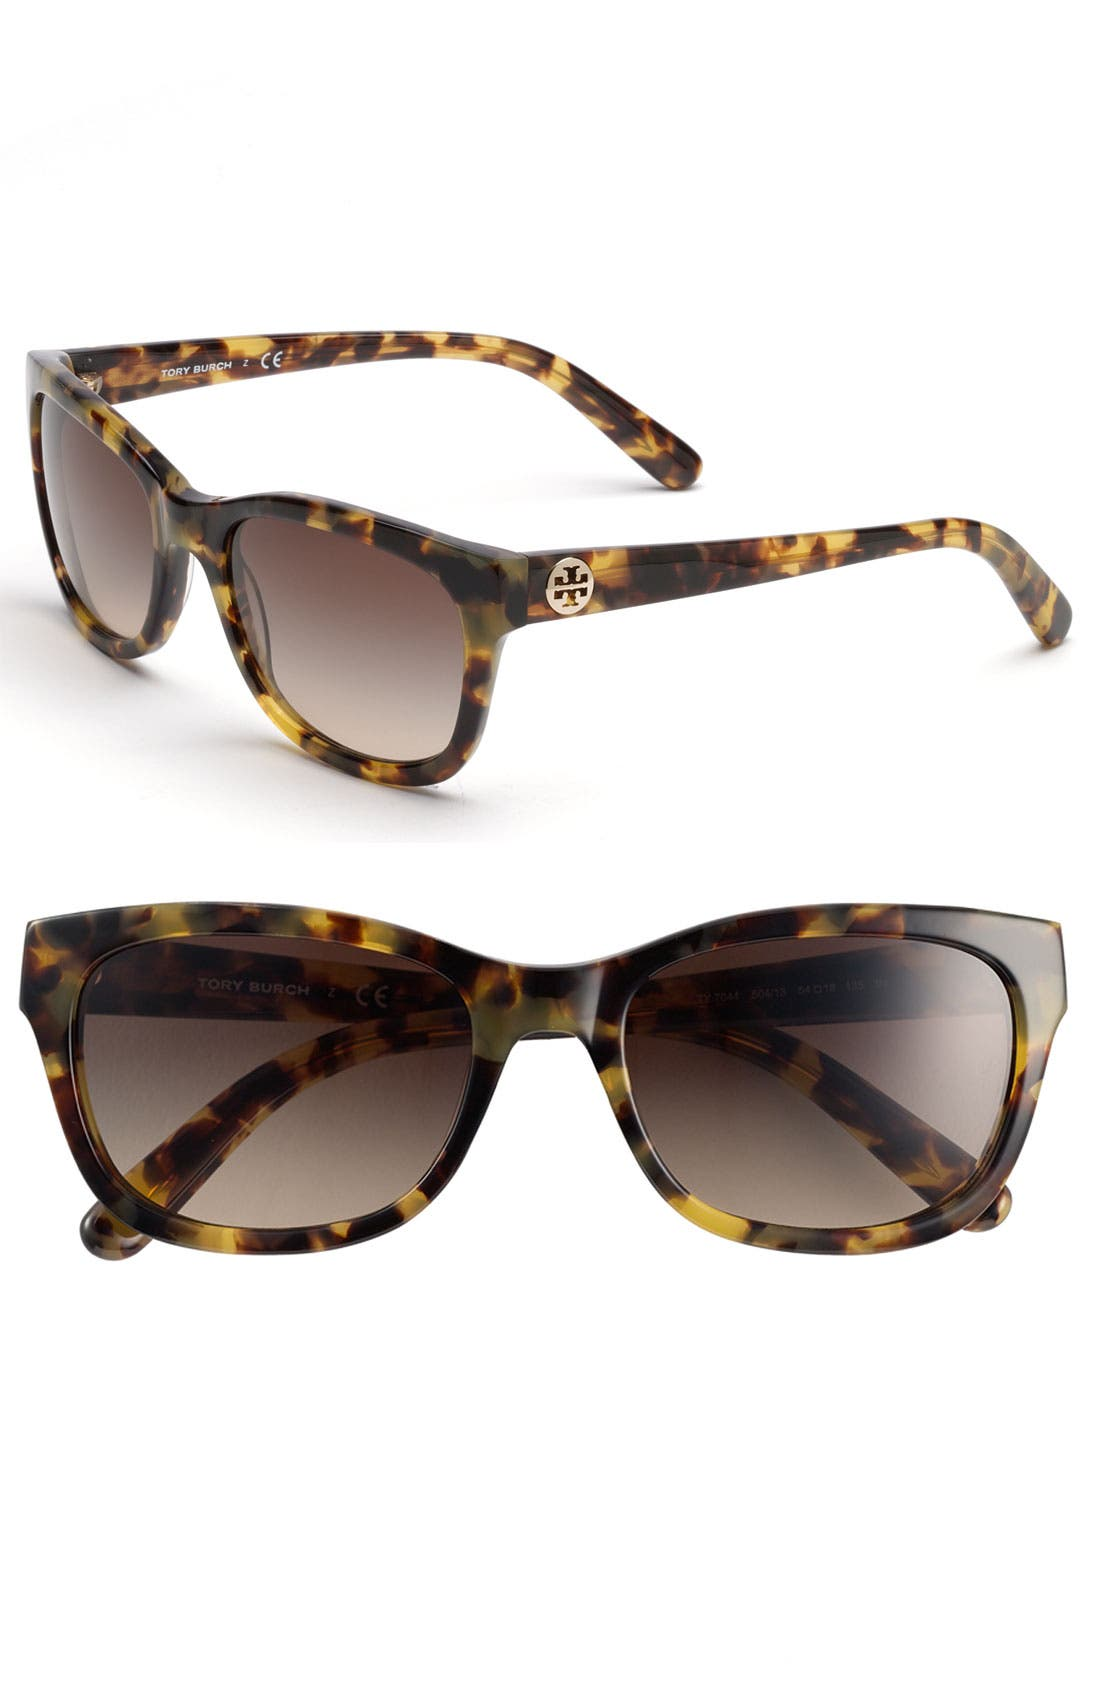 Alternate Image 1 Selected - Tory Burch 54mm Sunglasses